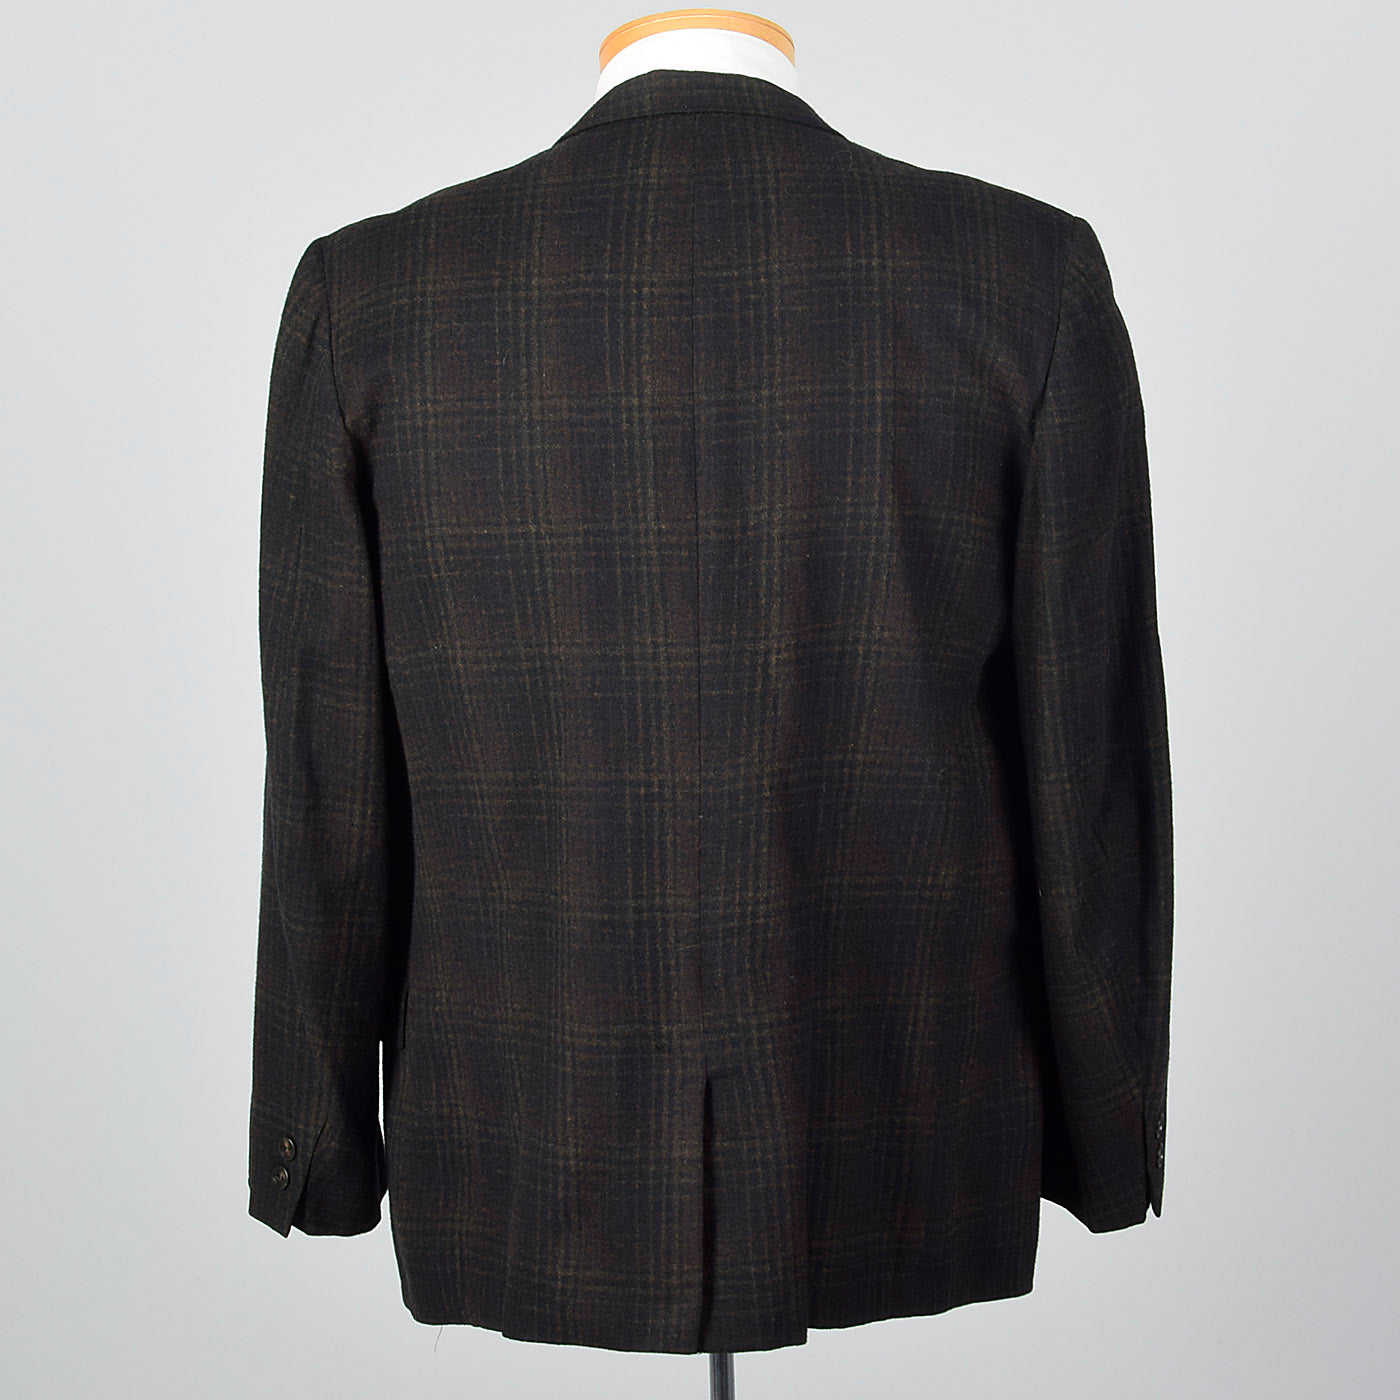 1960s Mens Deadstock Plaid Jacket